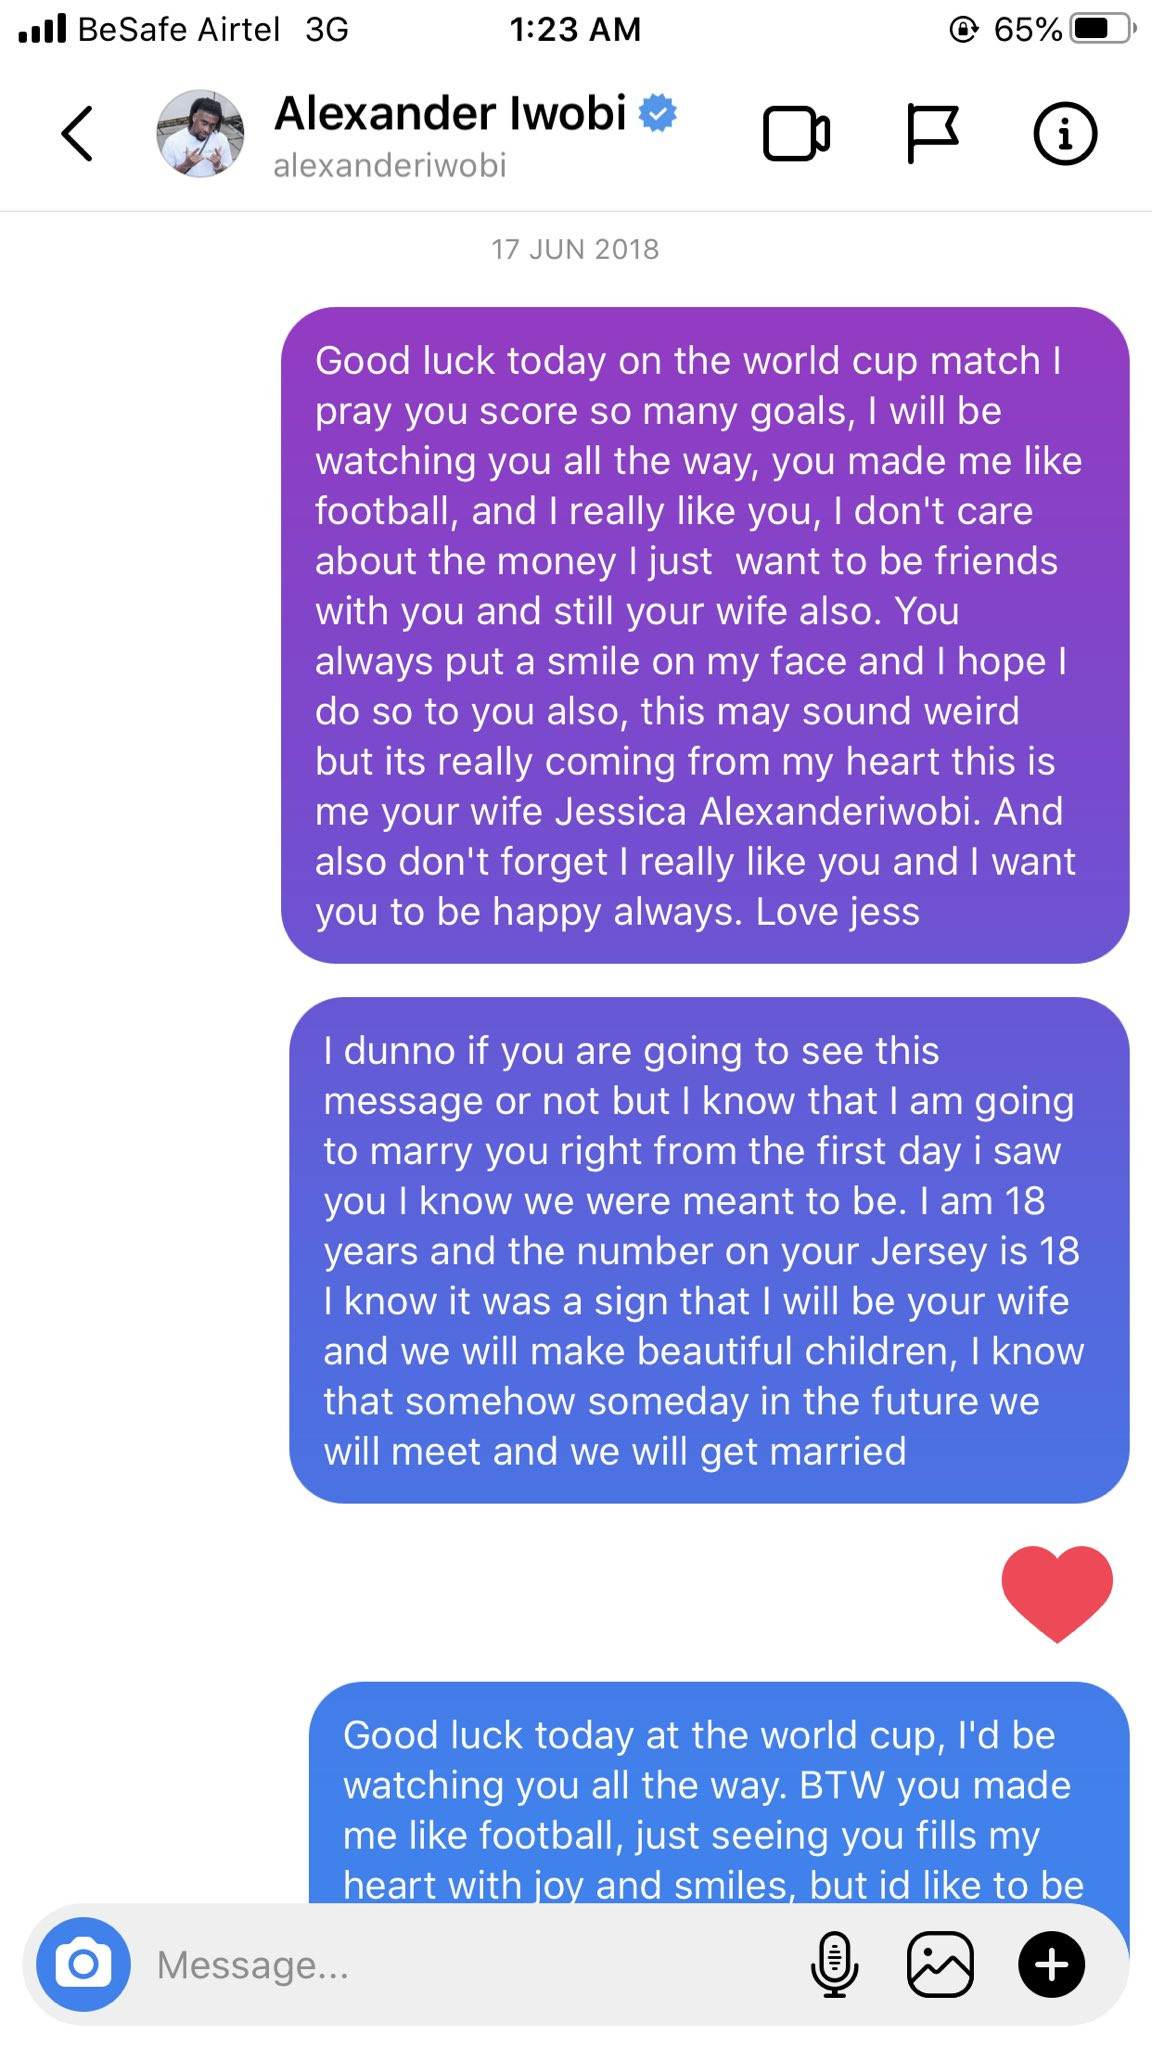 Nigerian lady shares screenshots of love messages she sent to footballer, Alex Iwobi when she was 18